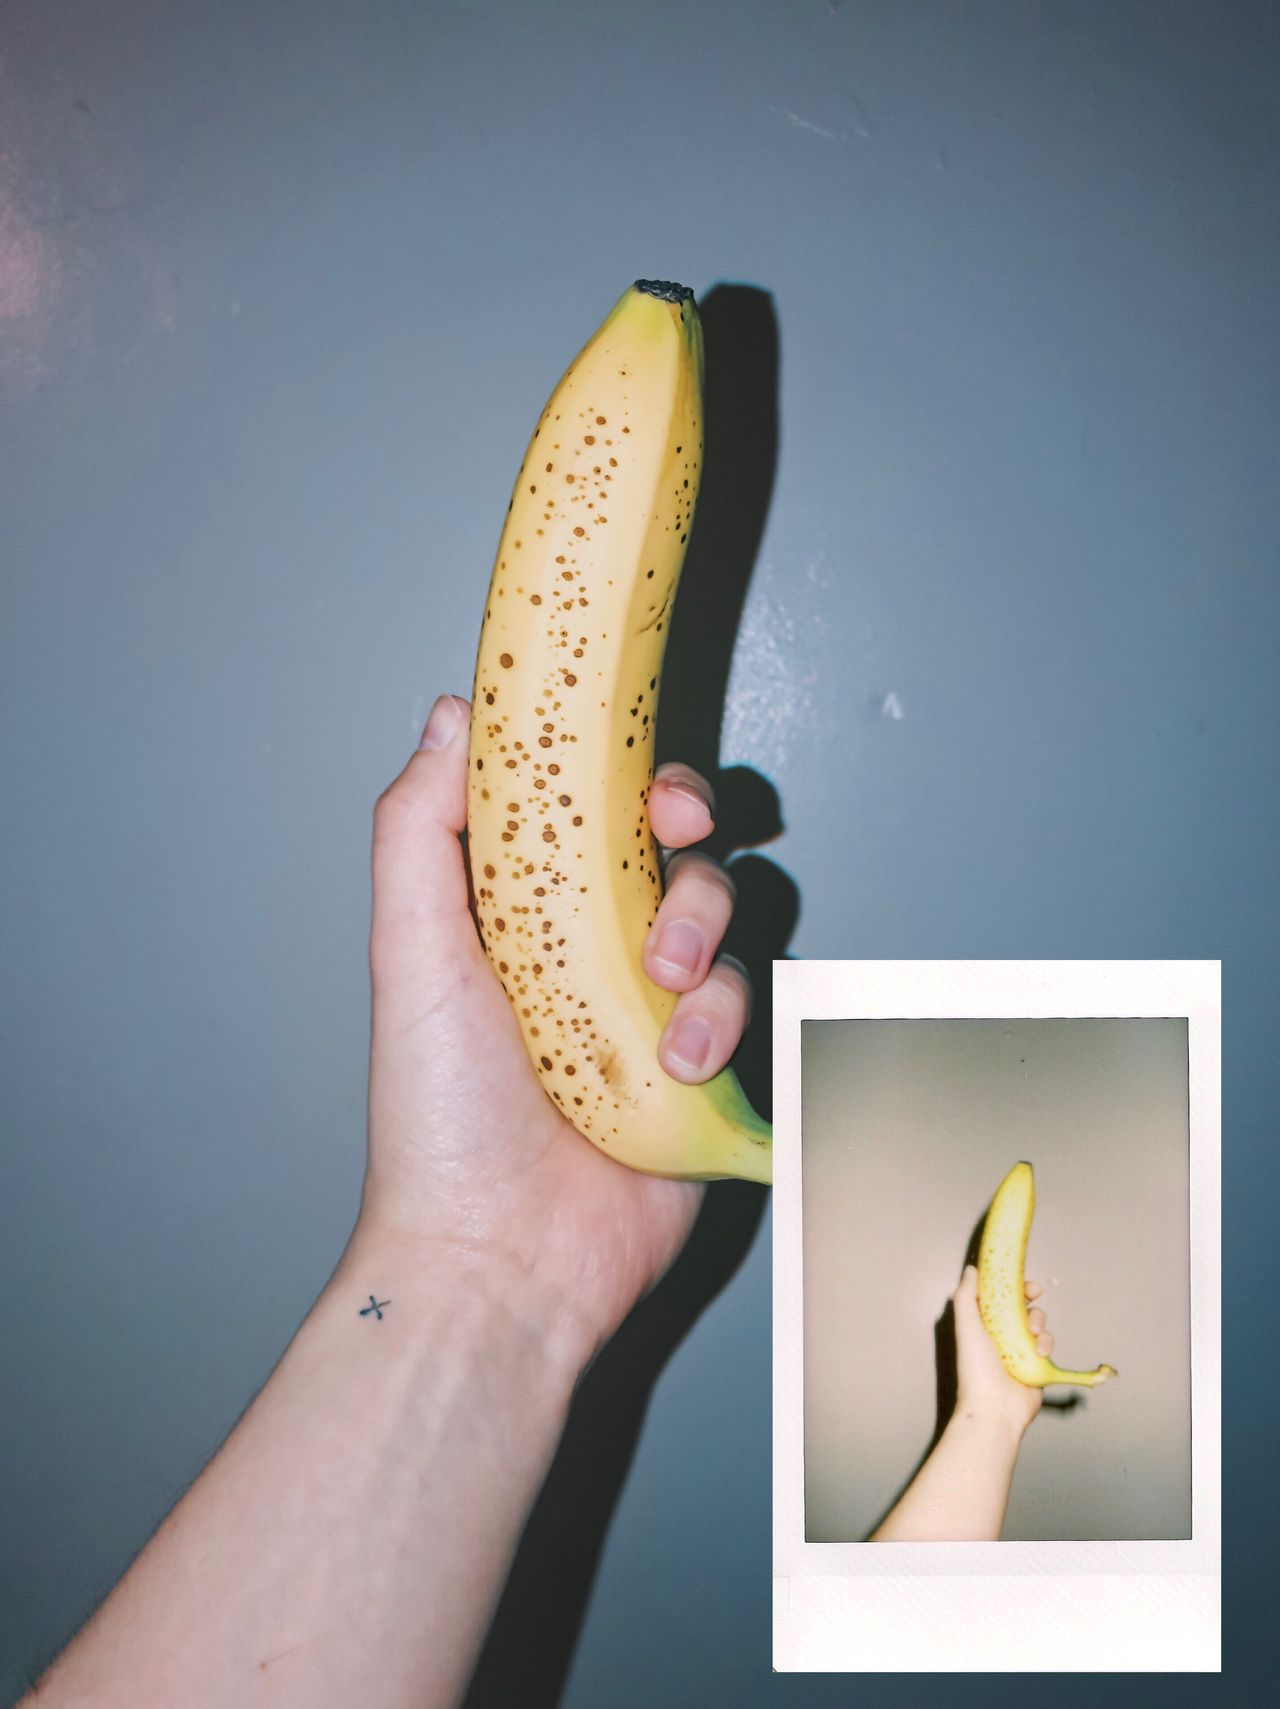 Instant Photo A Day Fruit Real People Human Hand Food And Drink Banana Food Holding One Person Healthy Eating Lifestyles Freshness Human Body Part Technology Close-up Women Men Banana Peel Indoors  Day Film Photography Film Film Is Not Dead